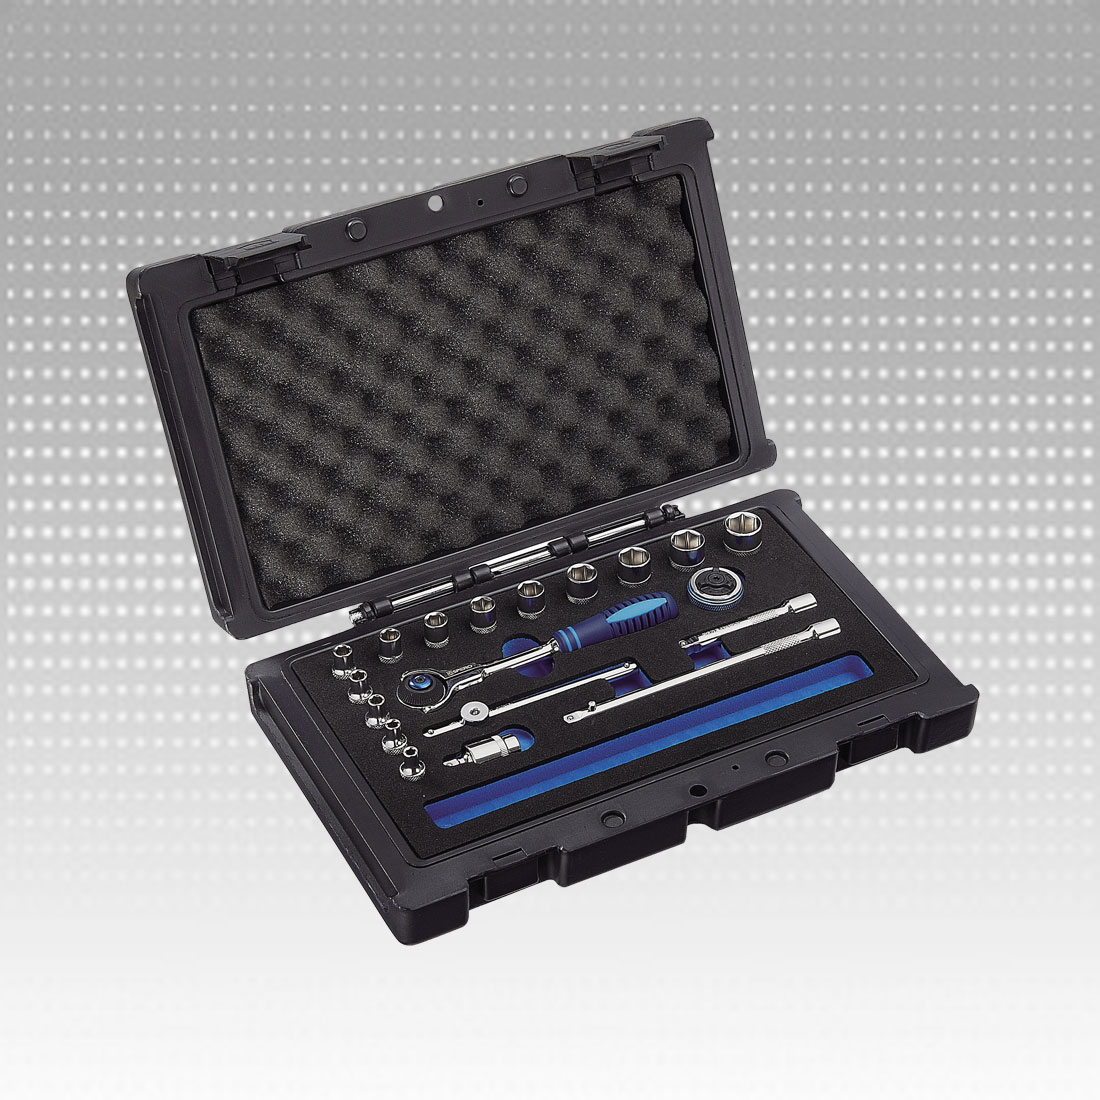 Socket Set with Swivel Universal Ratchet Wrench - Socket Set with Swivel Universal Ratchet Wrench